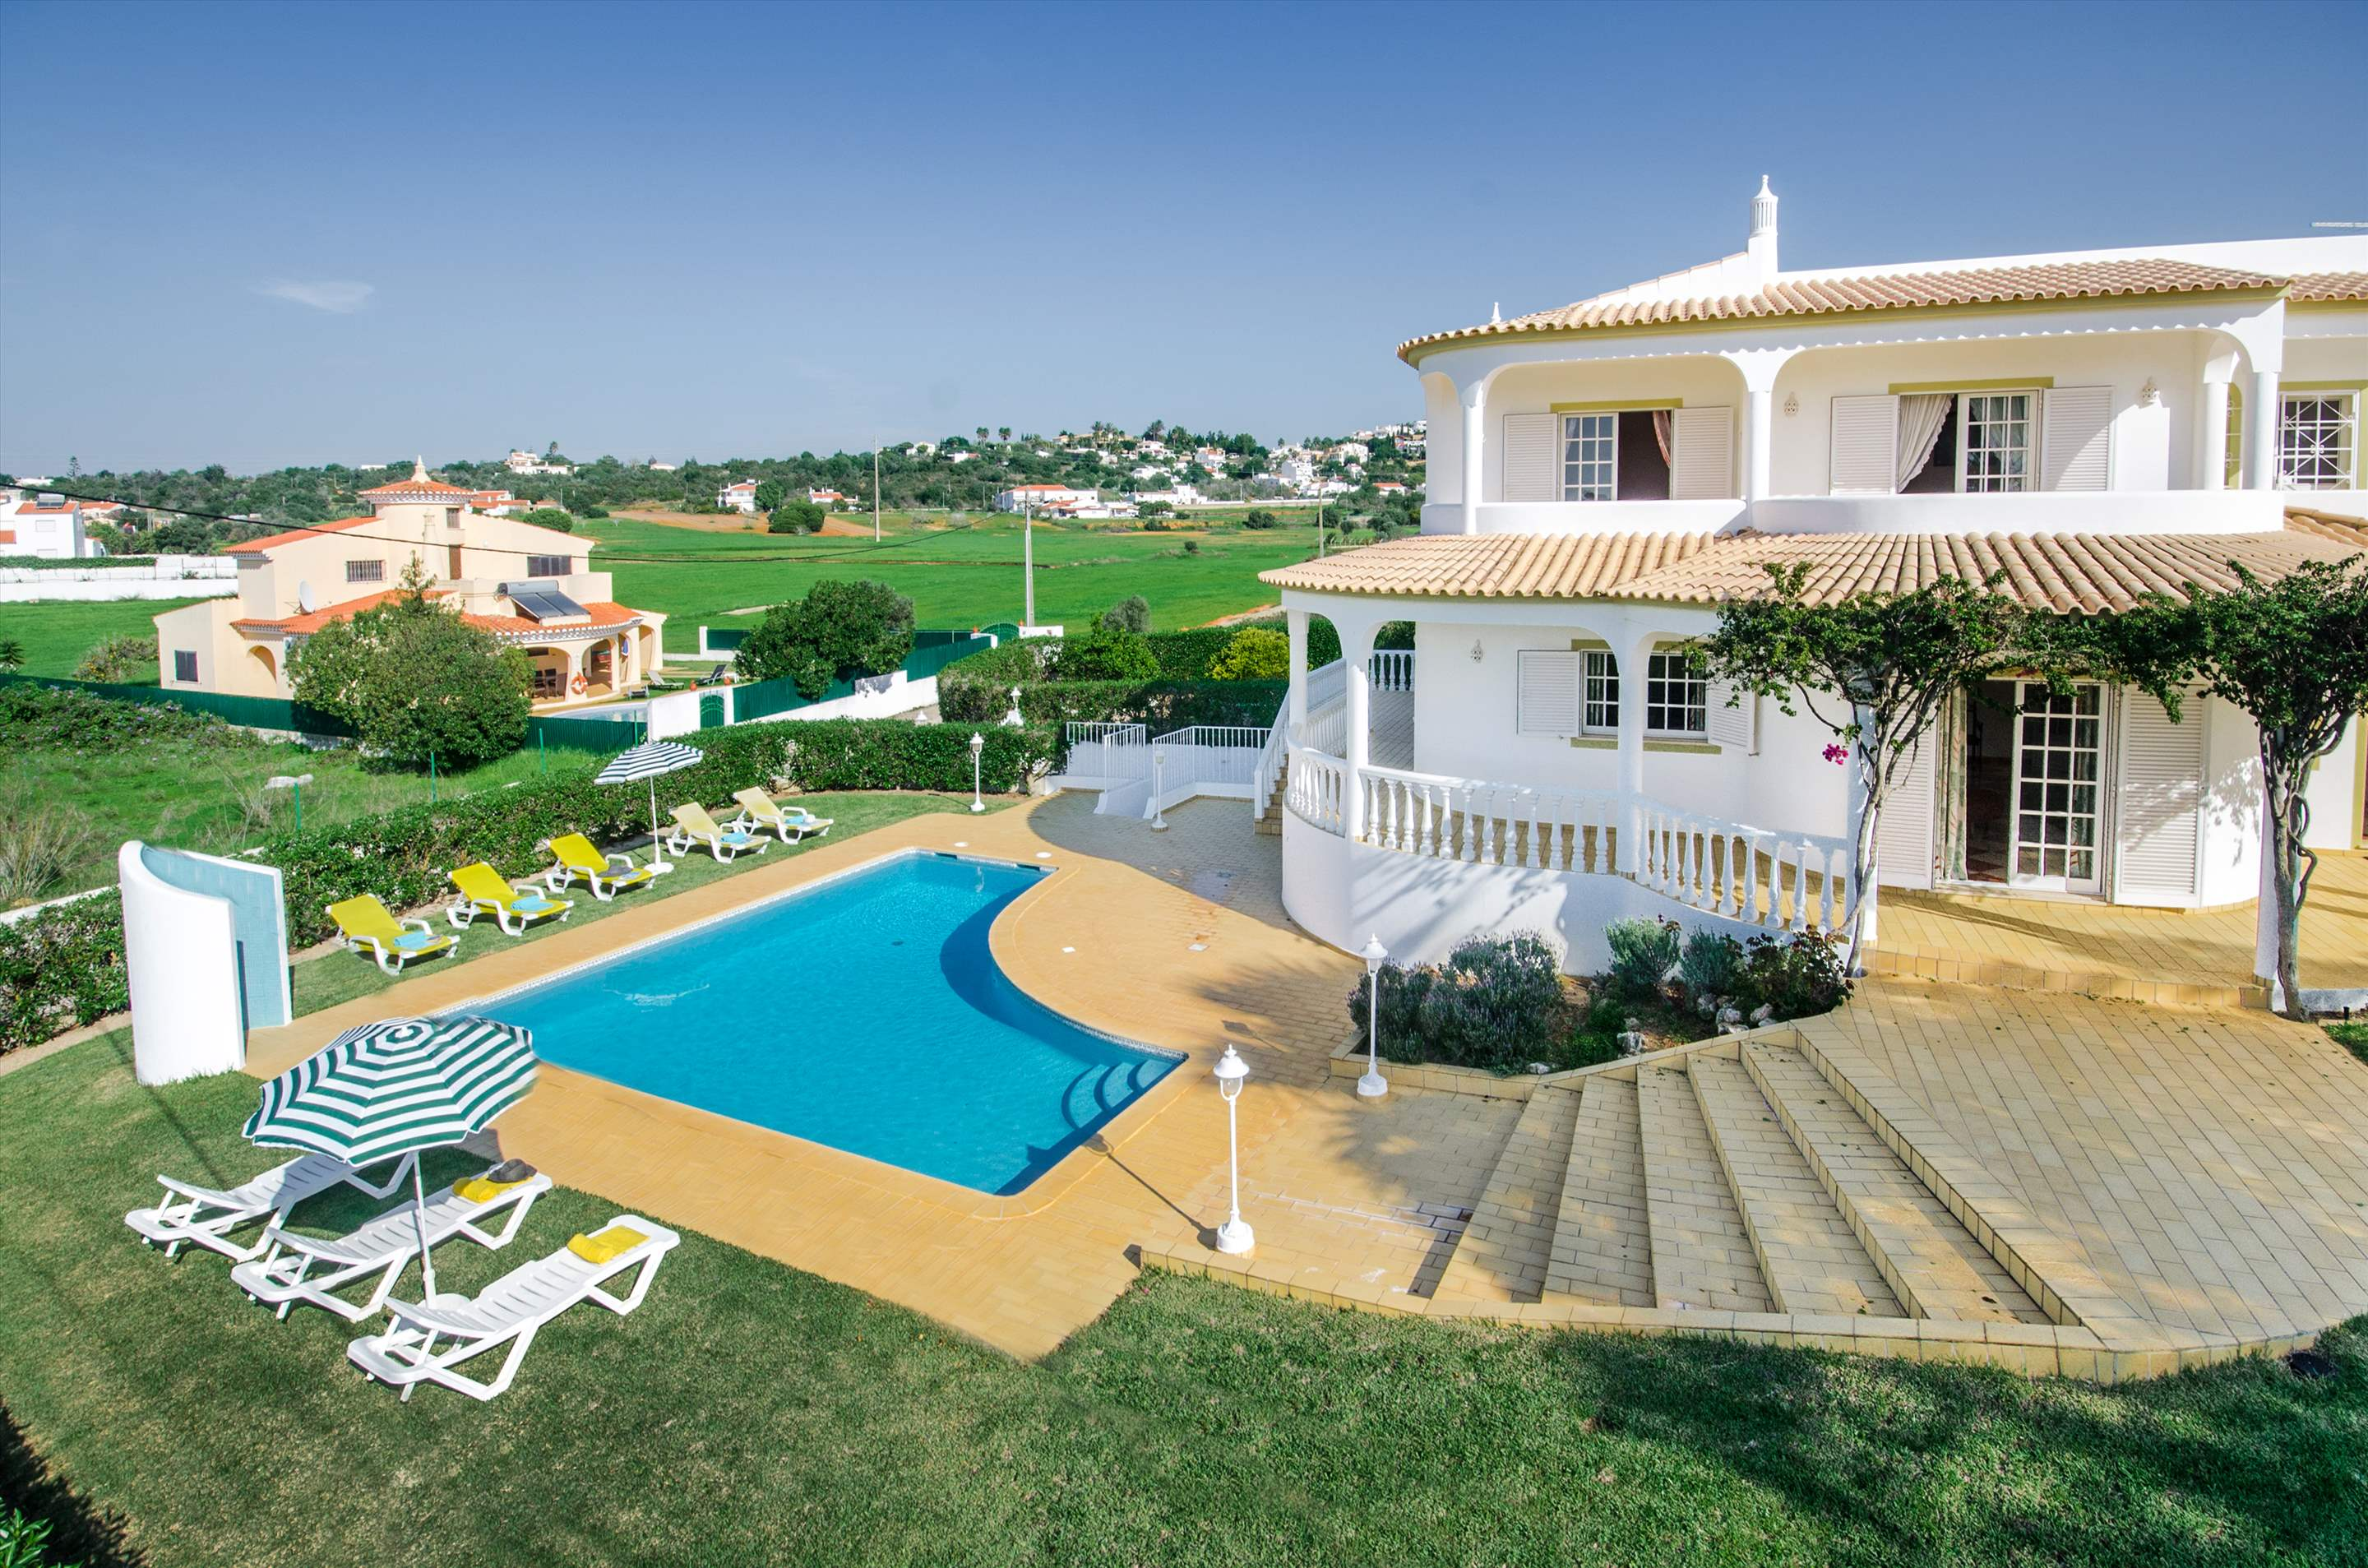 Villa Marco Real, 7-8 persons rate, 4 bedroom villa in Gale, Vale da Parra and Guia, Algarve Photo #10